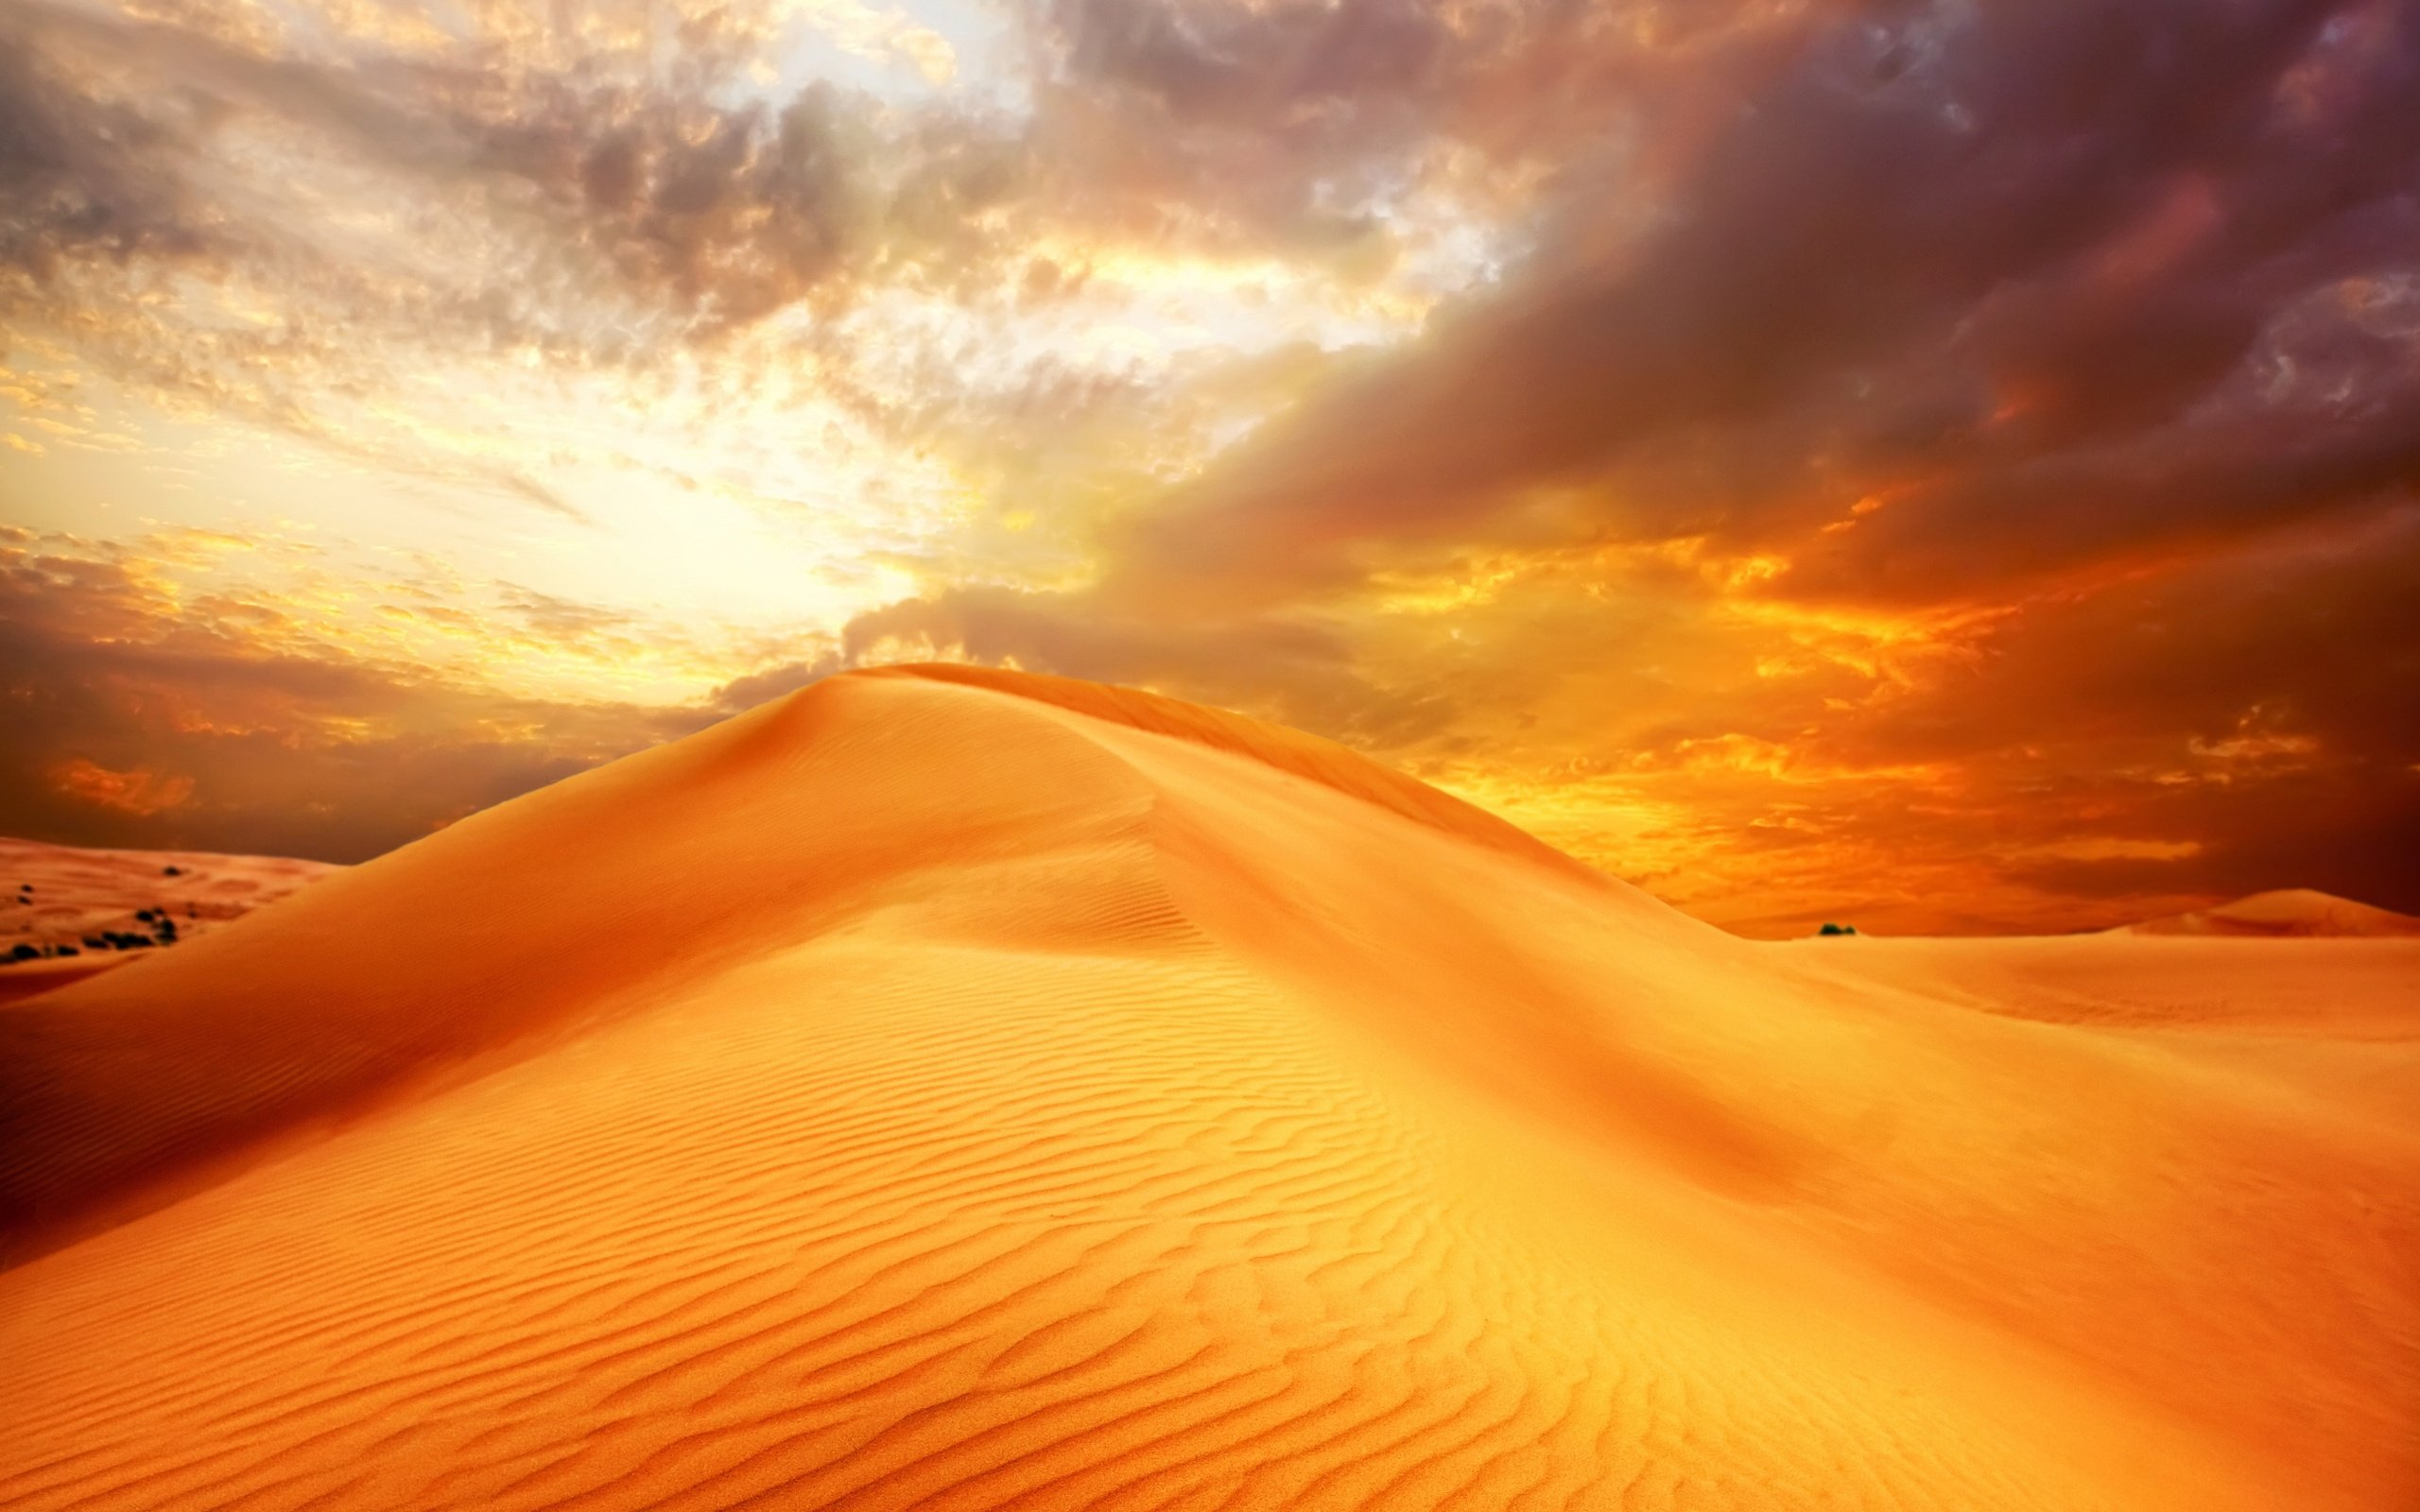 sunrise sand landscape clouds nature desert sky dune wallpaper    Desert Sunrise Wallpaper